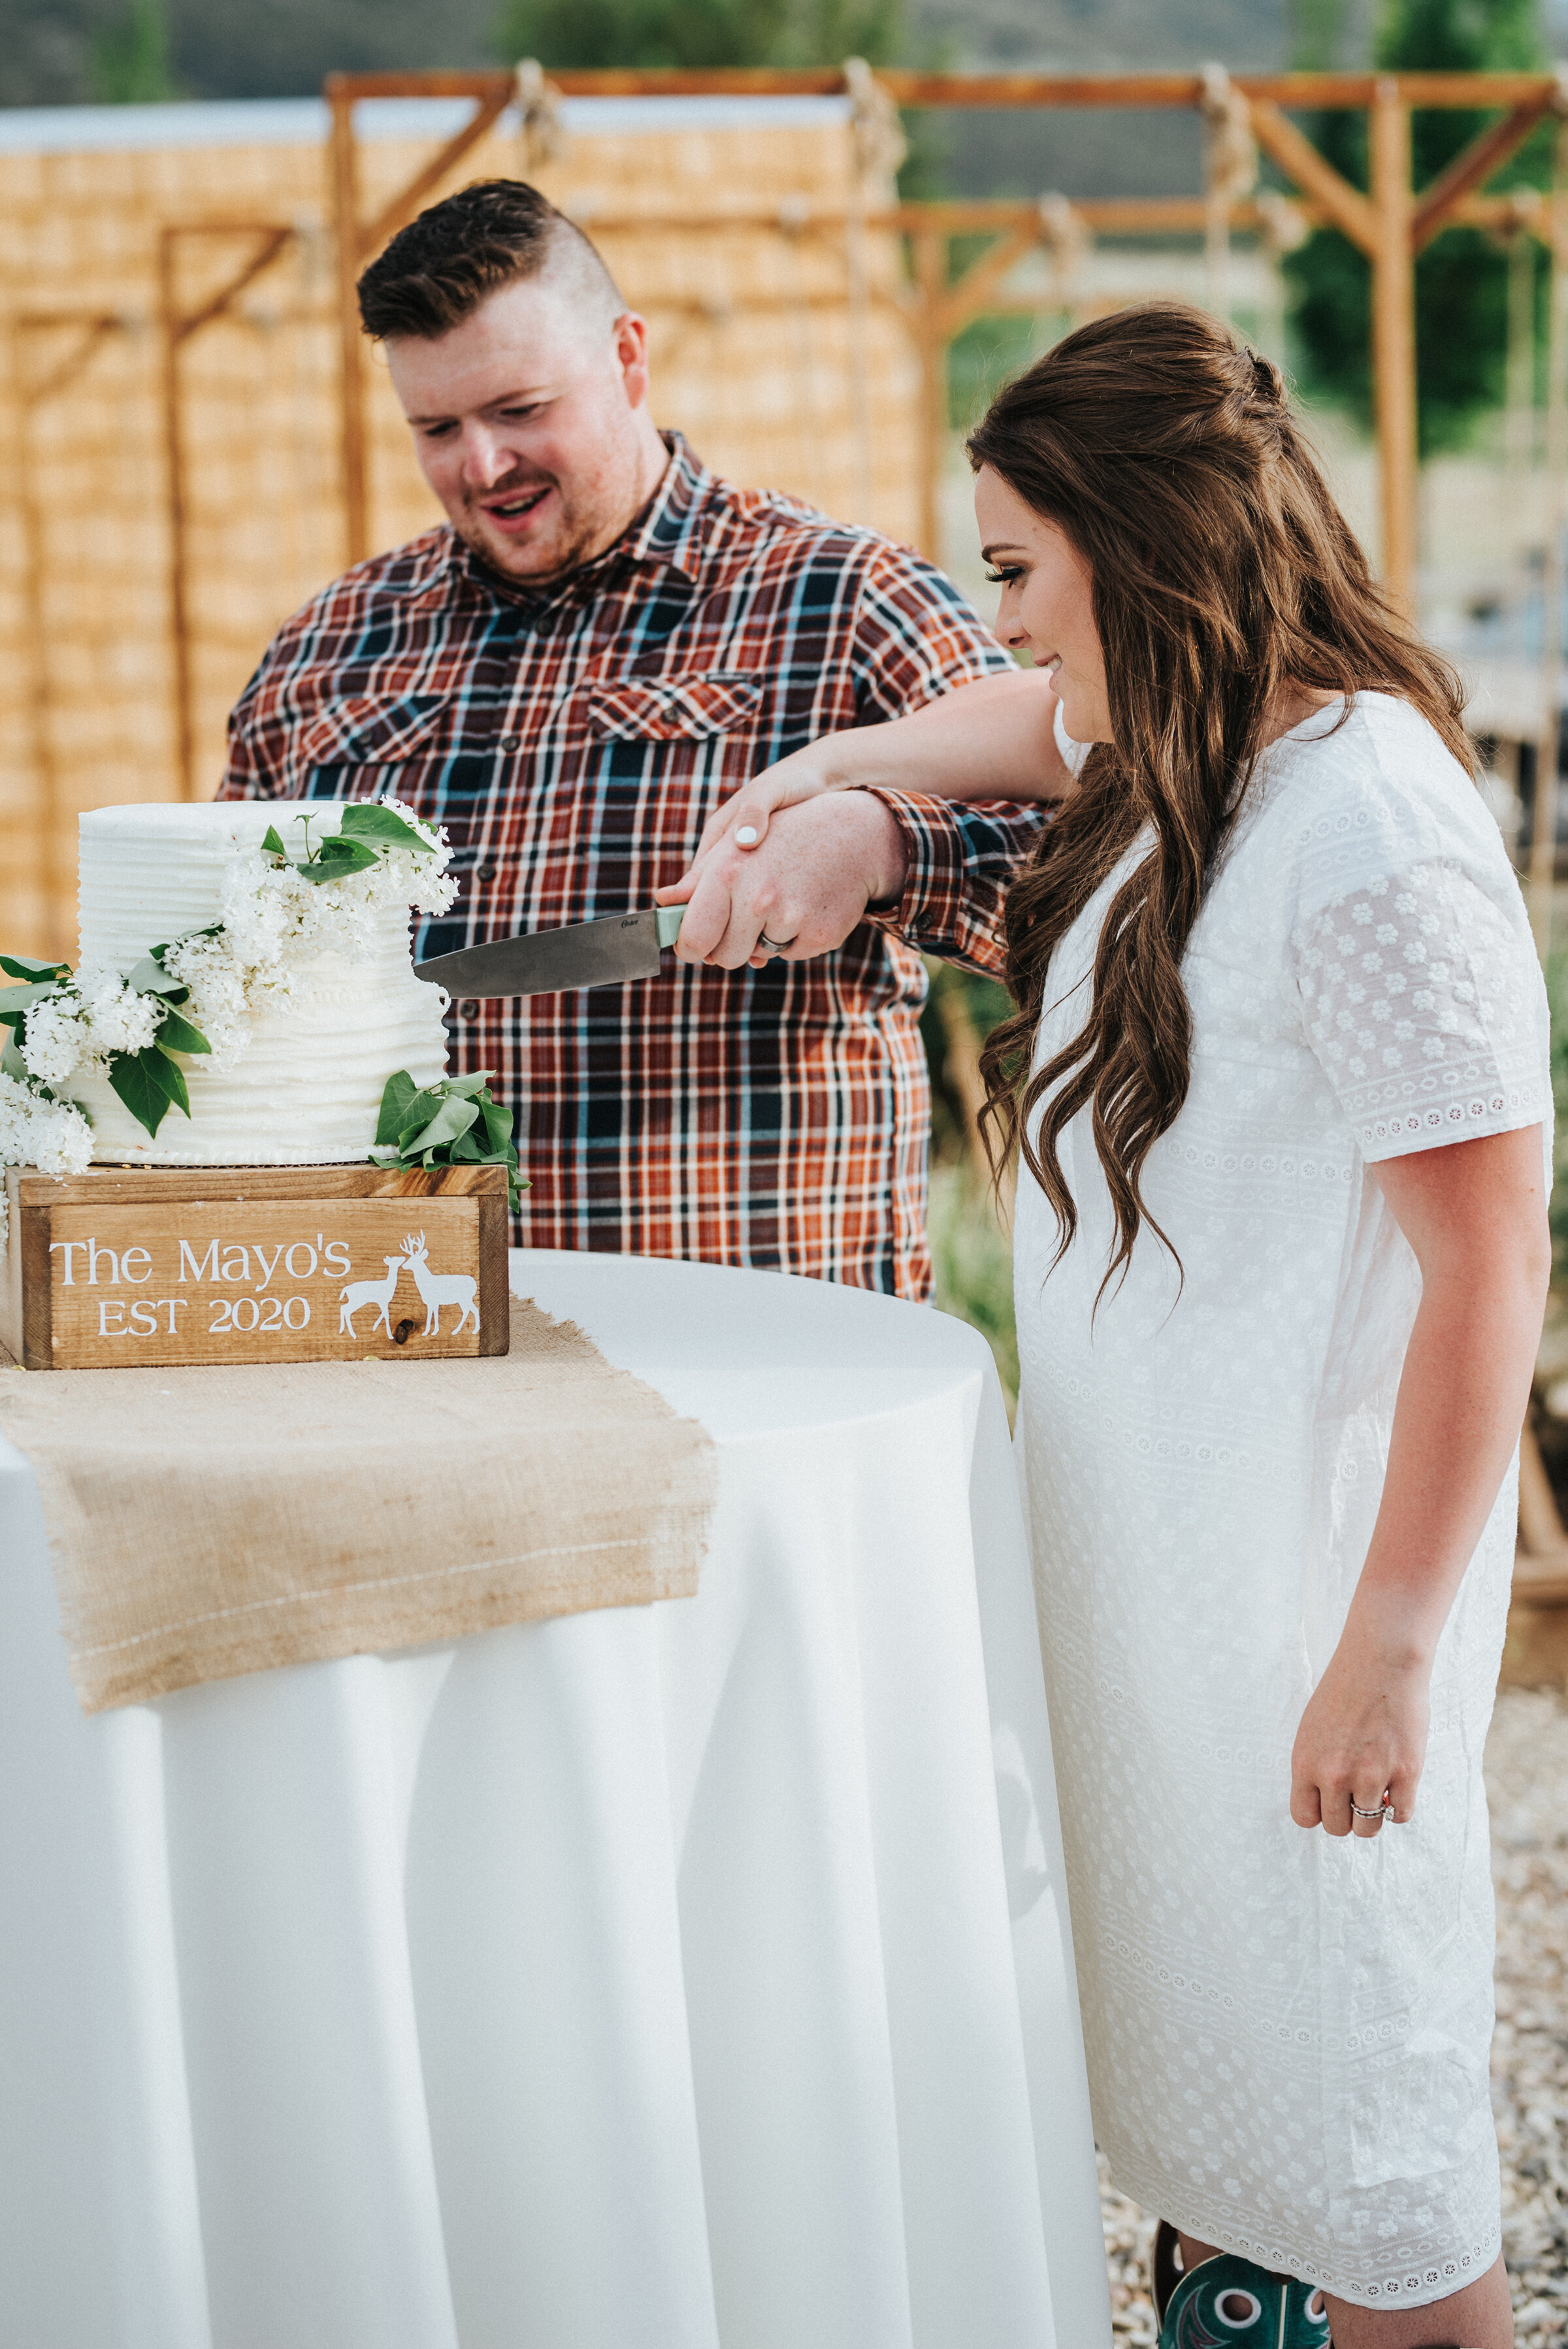 As a tradition, the bride and groom cut the gorgeous and simple wedding cake to share on their wedding day! photoshoot in Ephraim Utah photography wedding outdoor location western inspired rustic Airbnb photo aesthetic #ephraimutah #utahphotography #weddingdayphotography #gettingmarried #rusticwedding #utahwedding #westernstyle #weddingphotoshoot